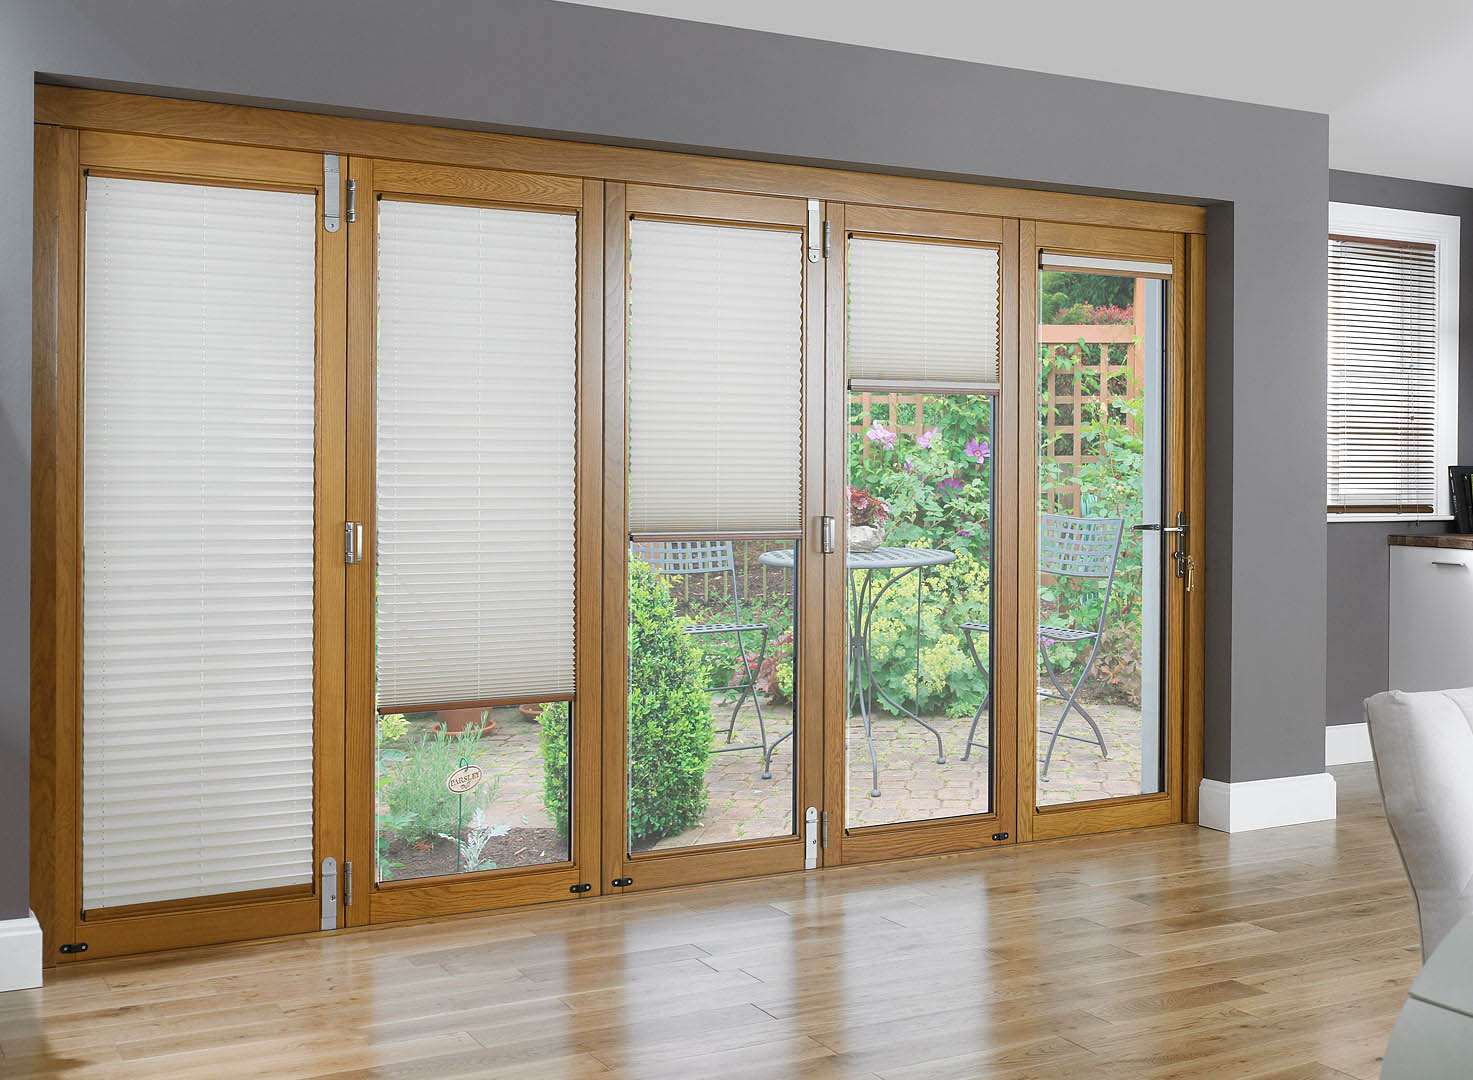 15 window treatments for sliding glass doors ideas - hgnv. - Patio Window Coverings Ideas